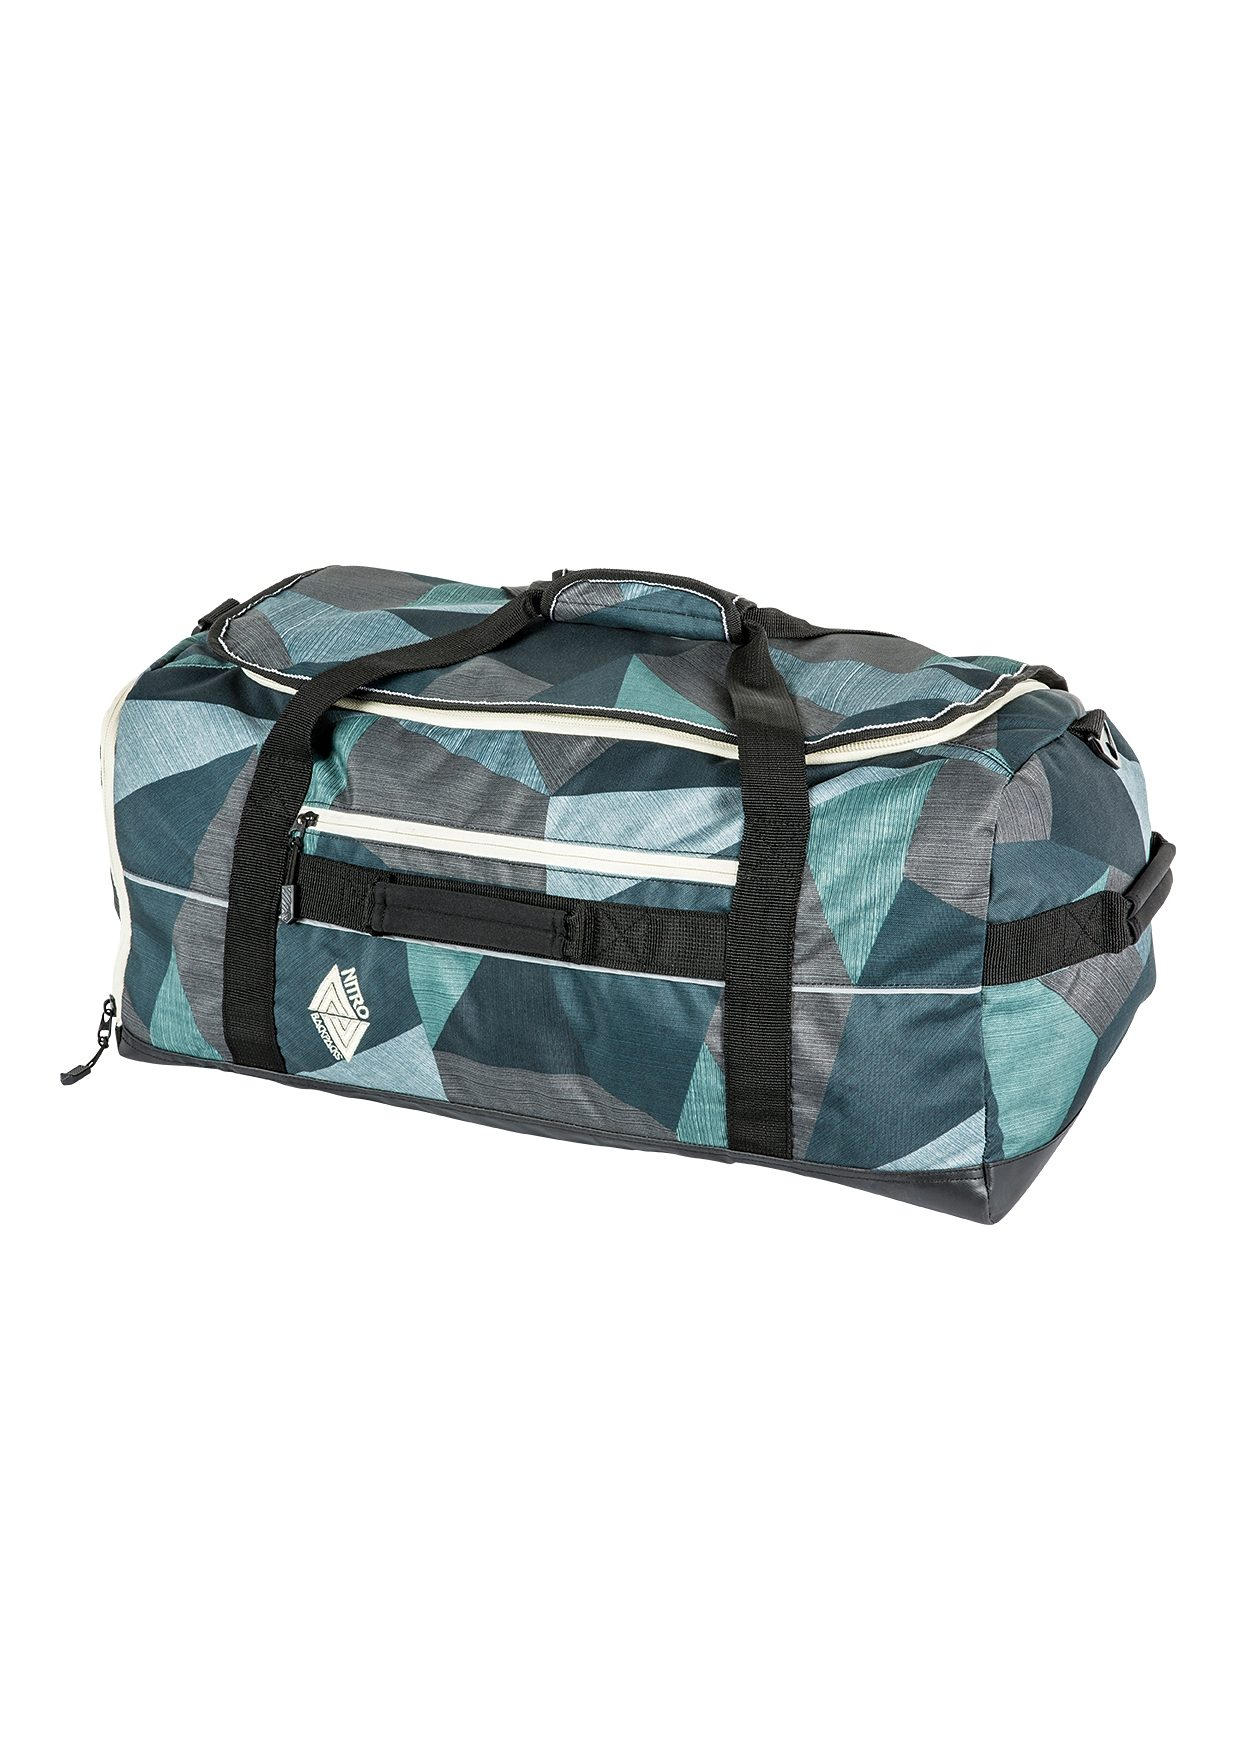 Nitro Reisetasche, »Team Duffle - Fragments Green«